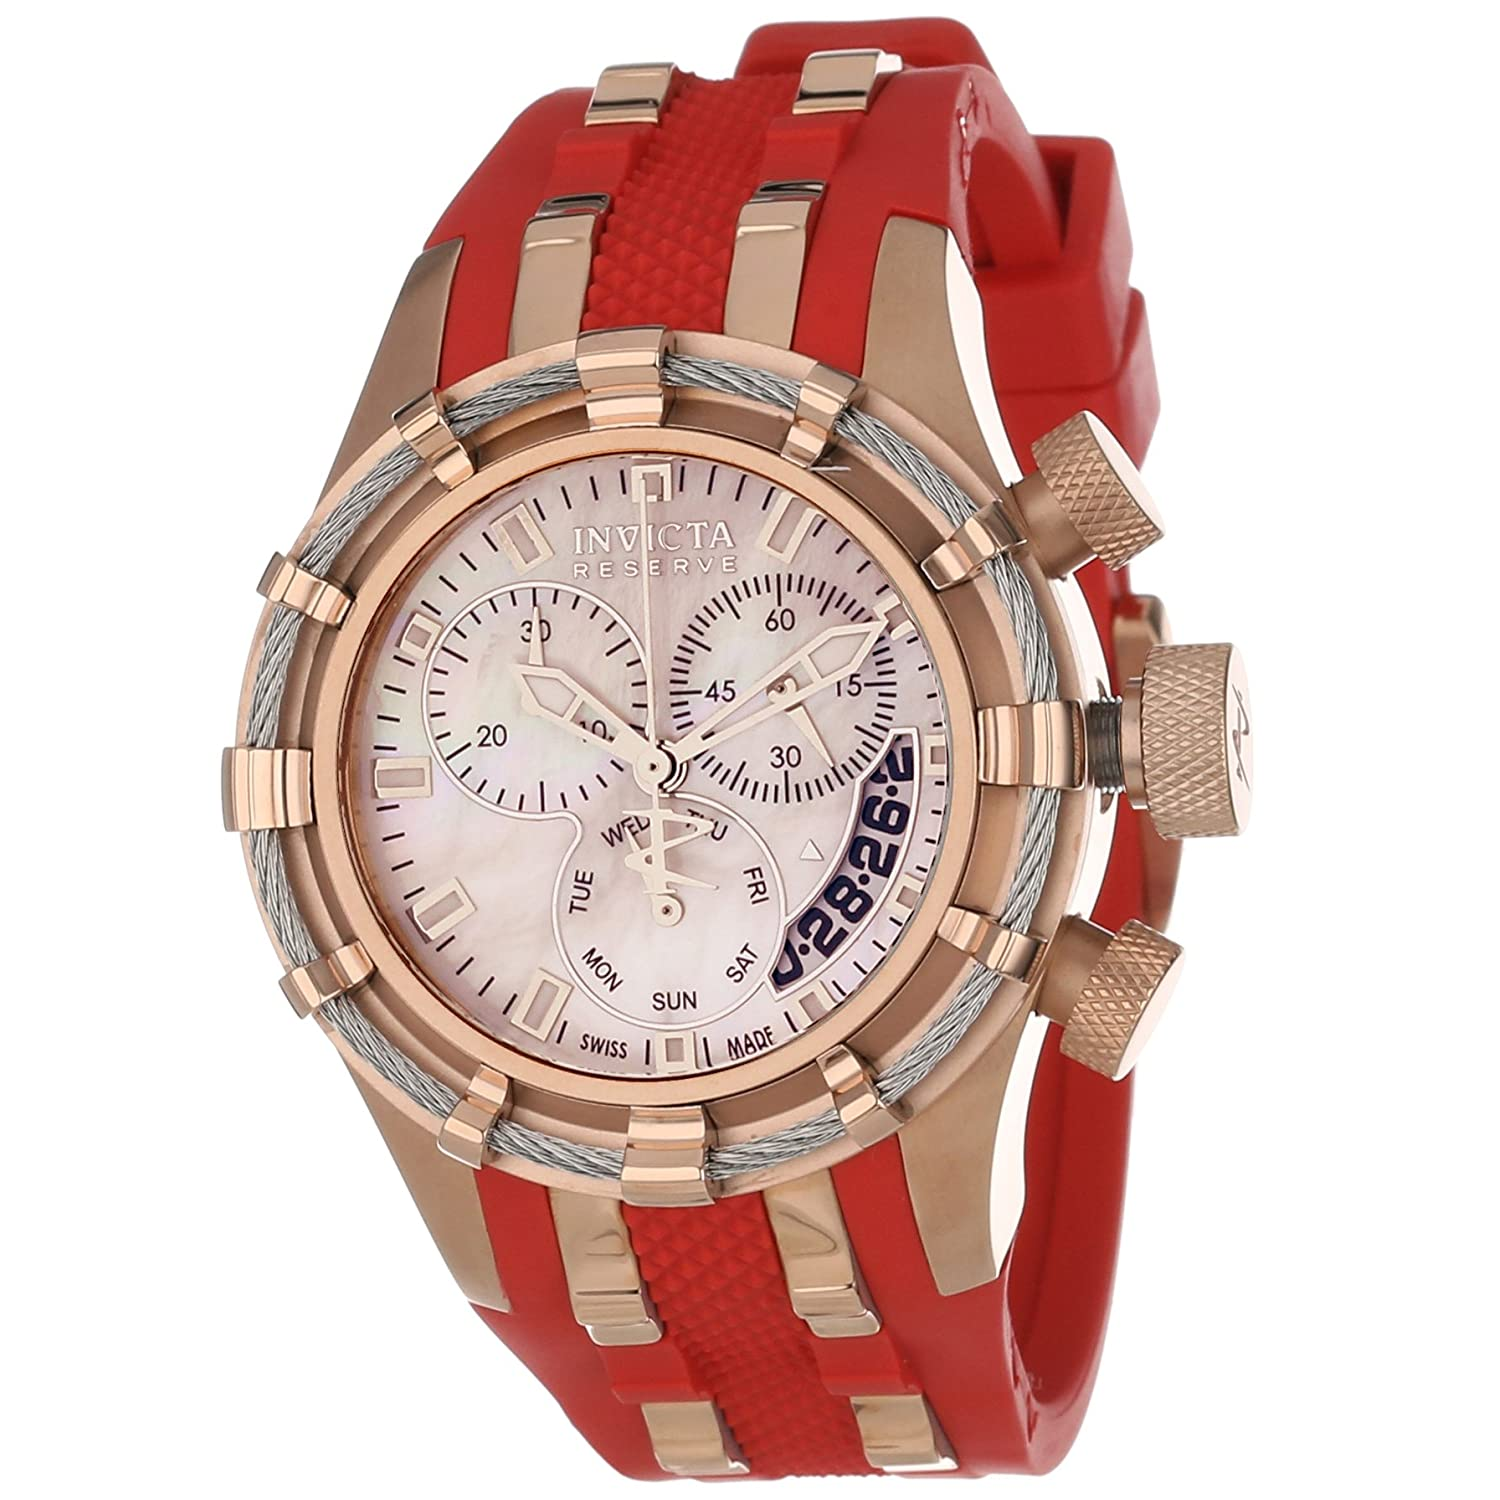 Invicta - Reserve Collection Bolt Chronograph Red Polyurethane Watch from endless.com